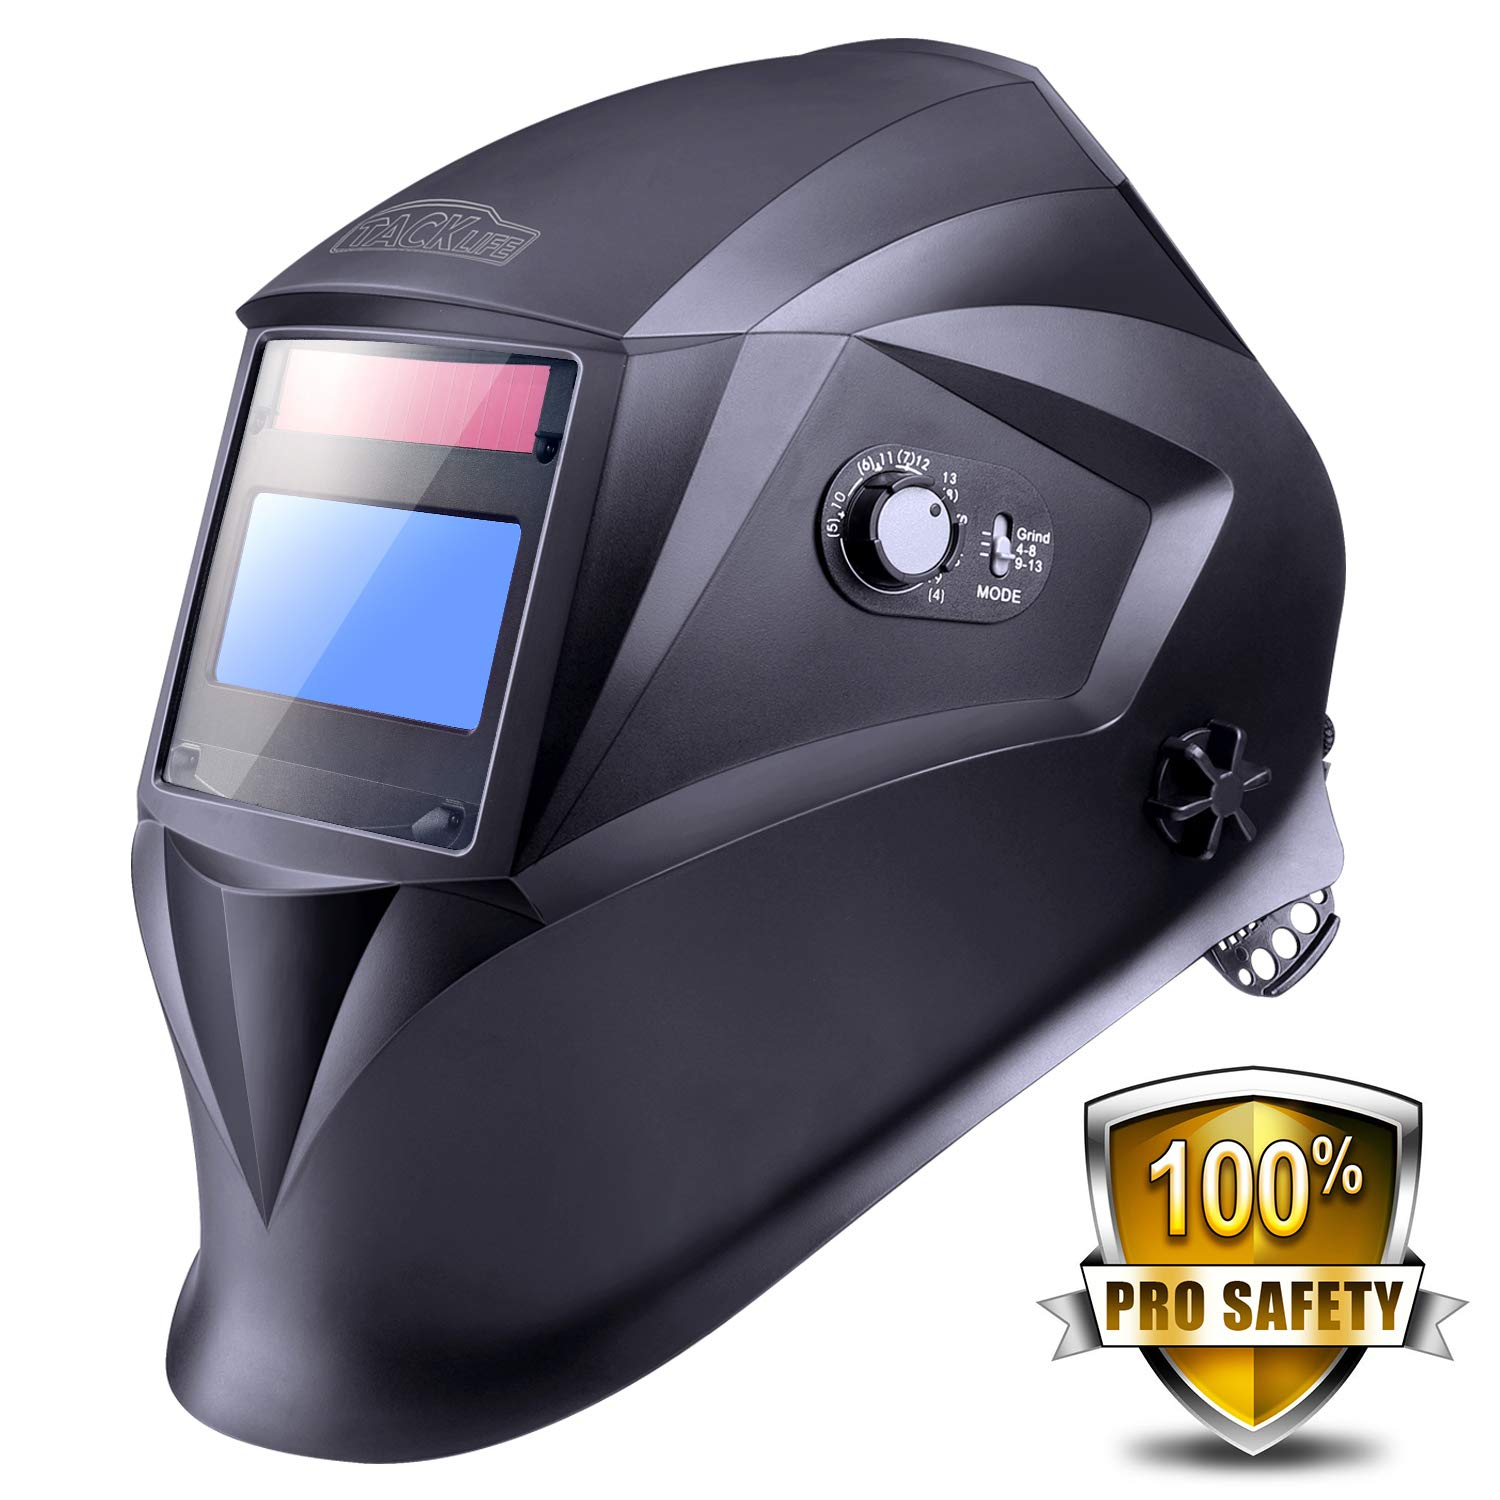 Welding Helmet with Top Optical Class 1/1/1/1, Full Shade Range 3/4-8/9-13, UV/IR Protection DIN 16, 6Pcs Replacement Lenses, Protecting Bag, Grinding Feature for TIG MIG MMA Plasma - PAH04D by TACKLIFE